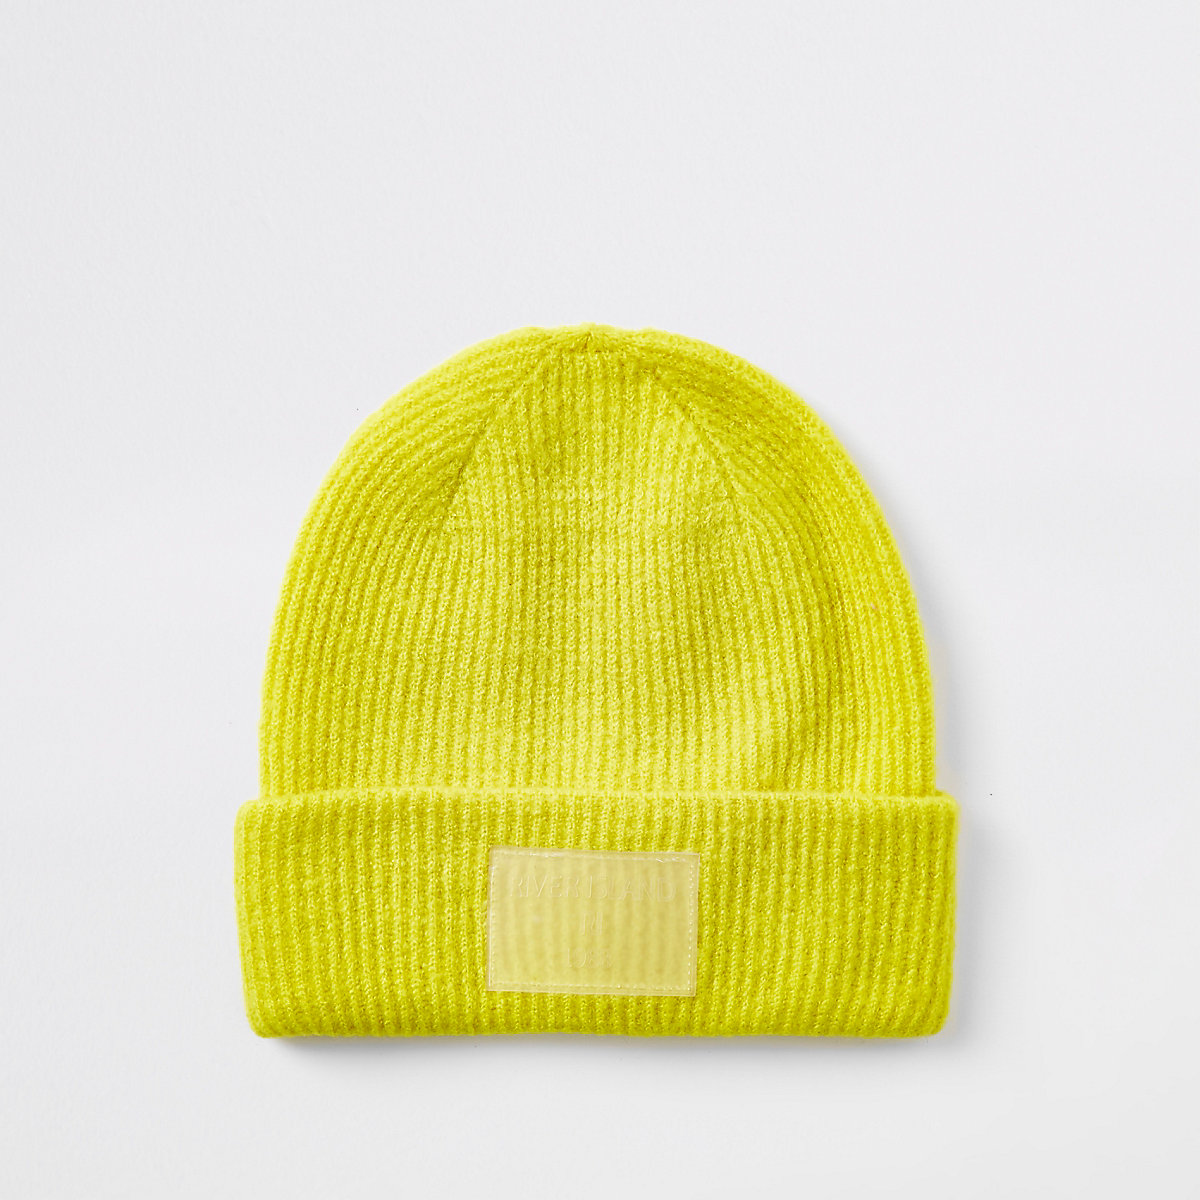 Bright yellow beanie hat - Hats - Accessories - women 3015df4e738